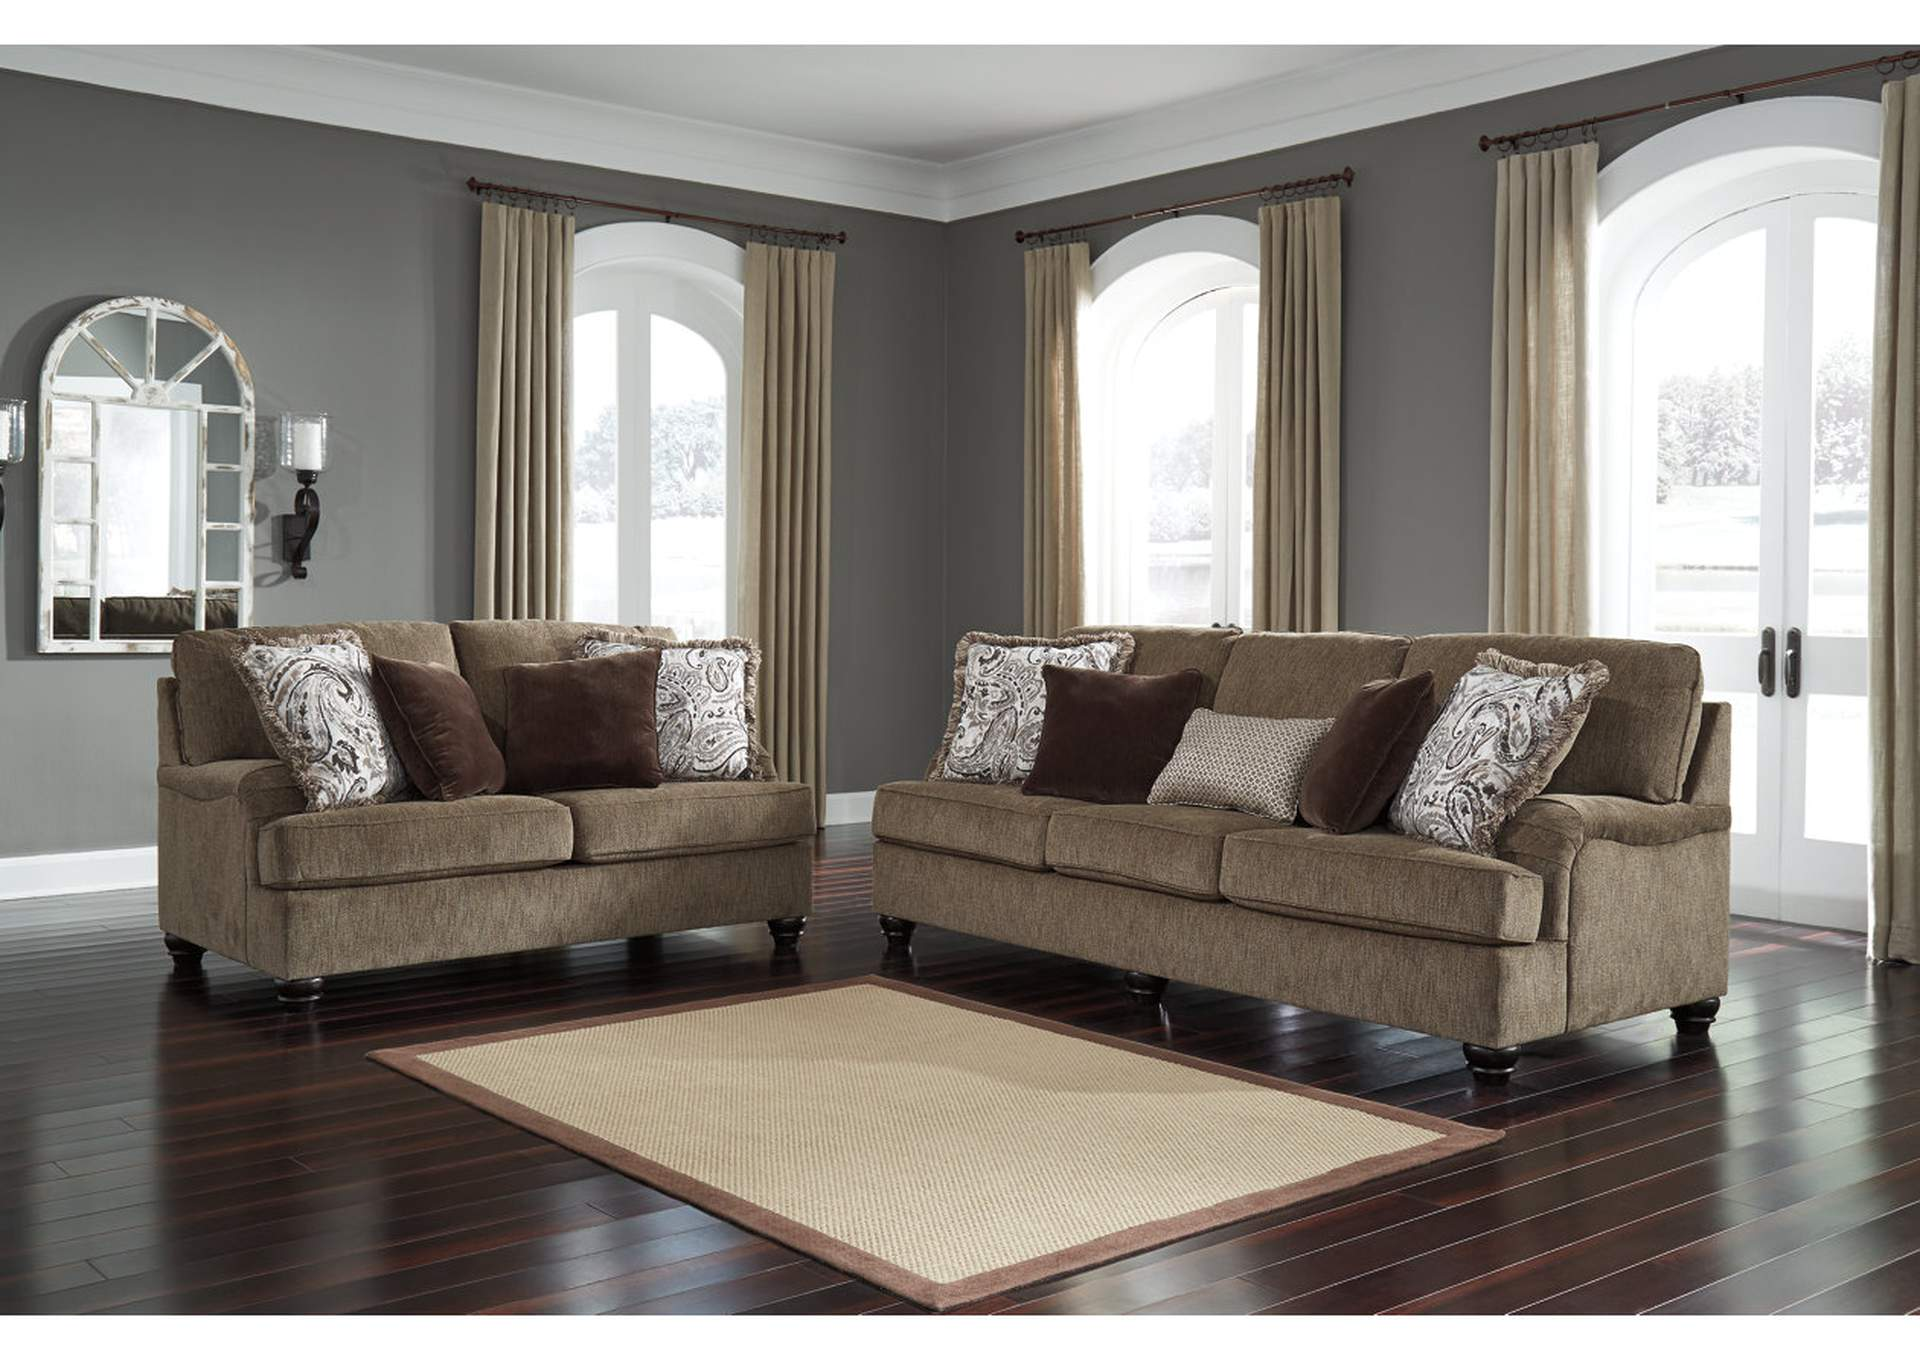 Braemar Brown Sofa & Loveseat w/8 Pillows,Signature Design By Ashley